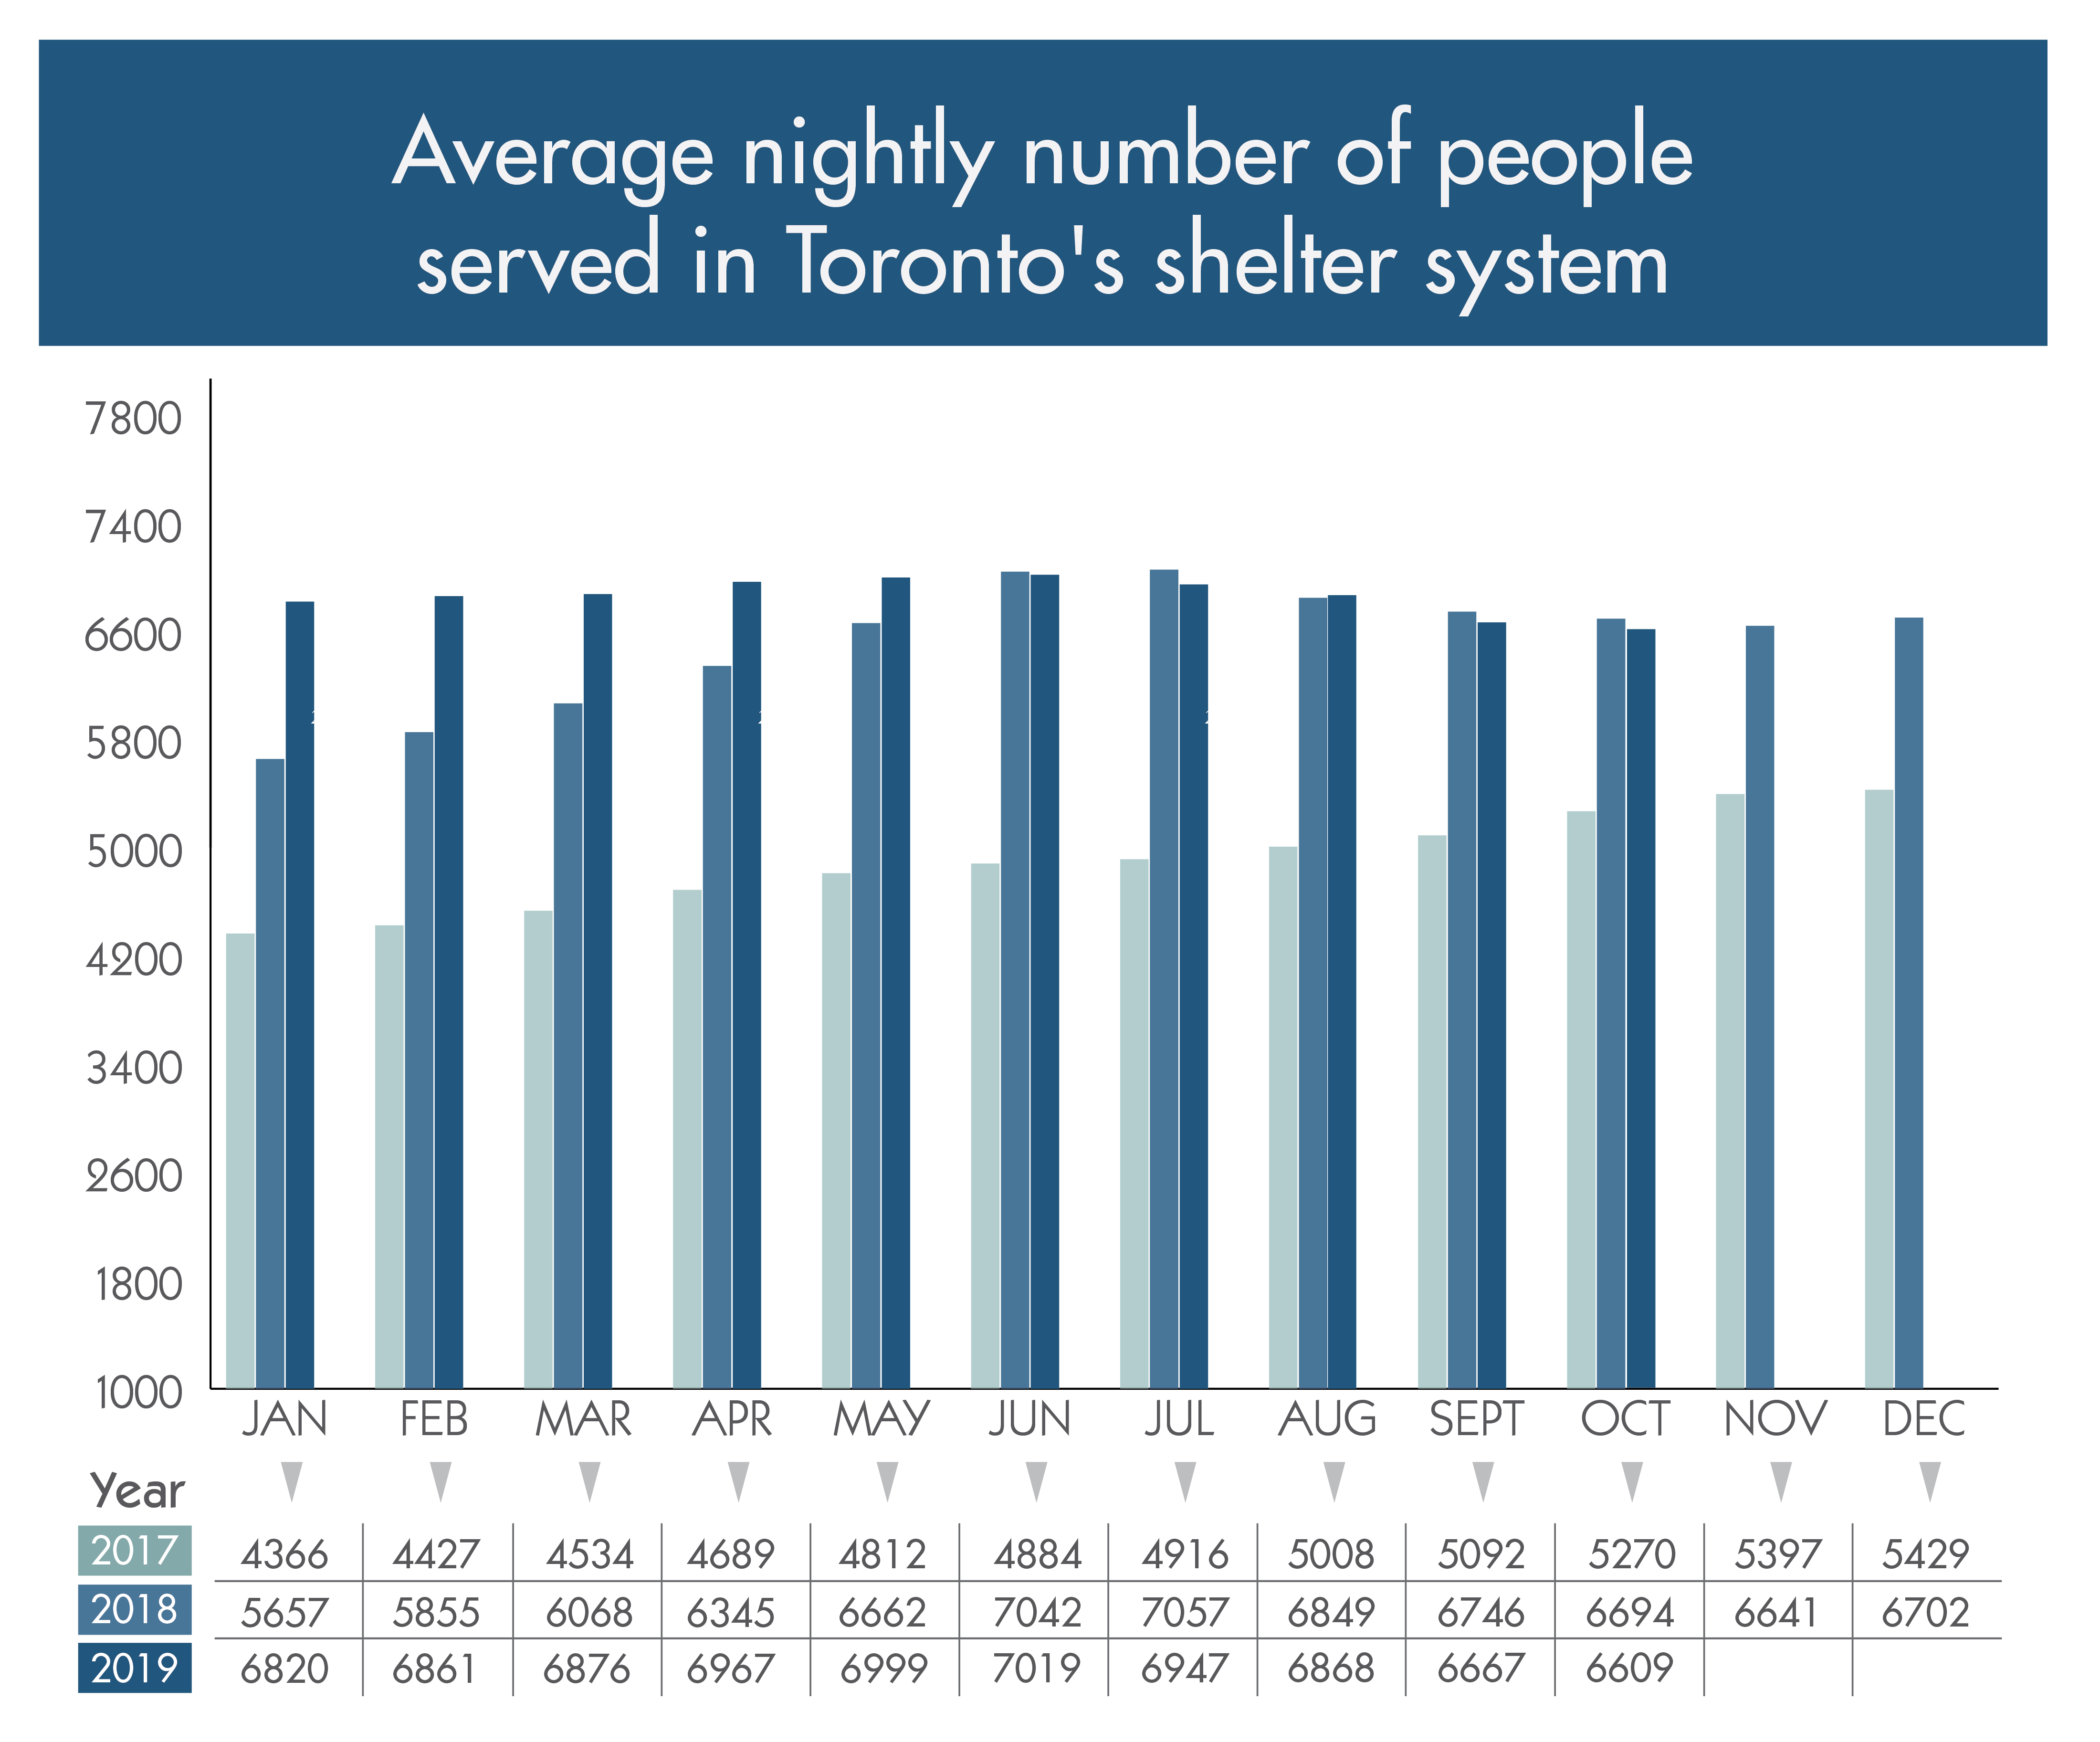 Vertical bar charts illustrating average monthly total of y number of people served in shelter system, year over year 2017 to 2019